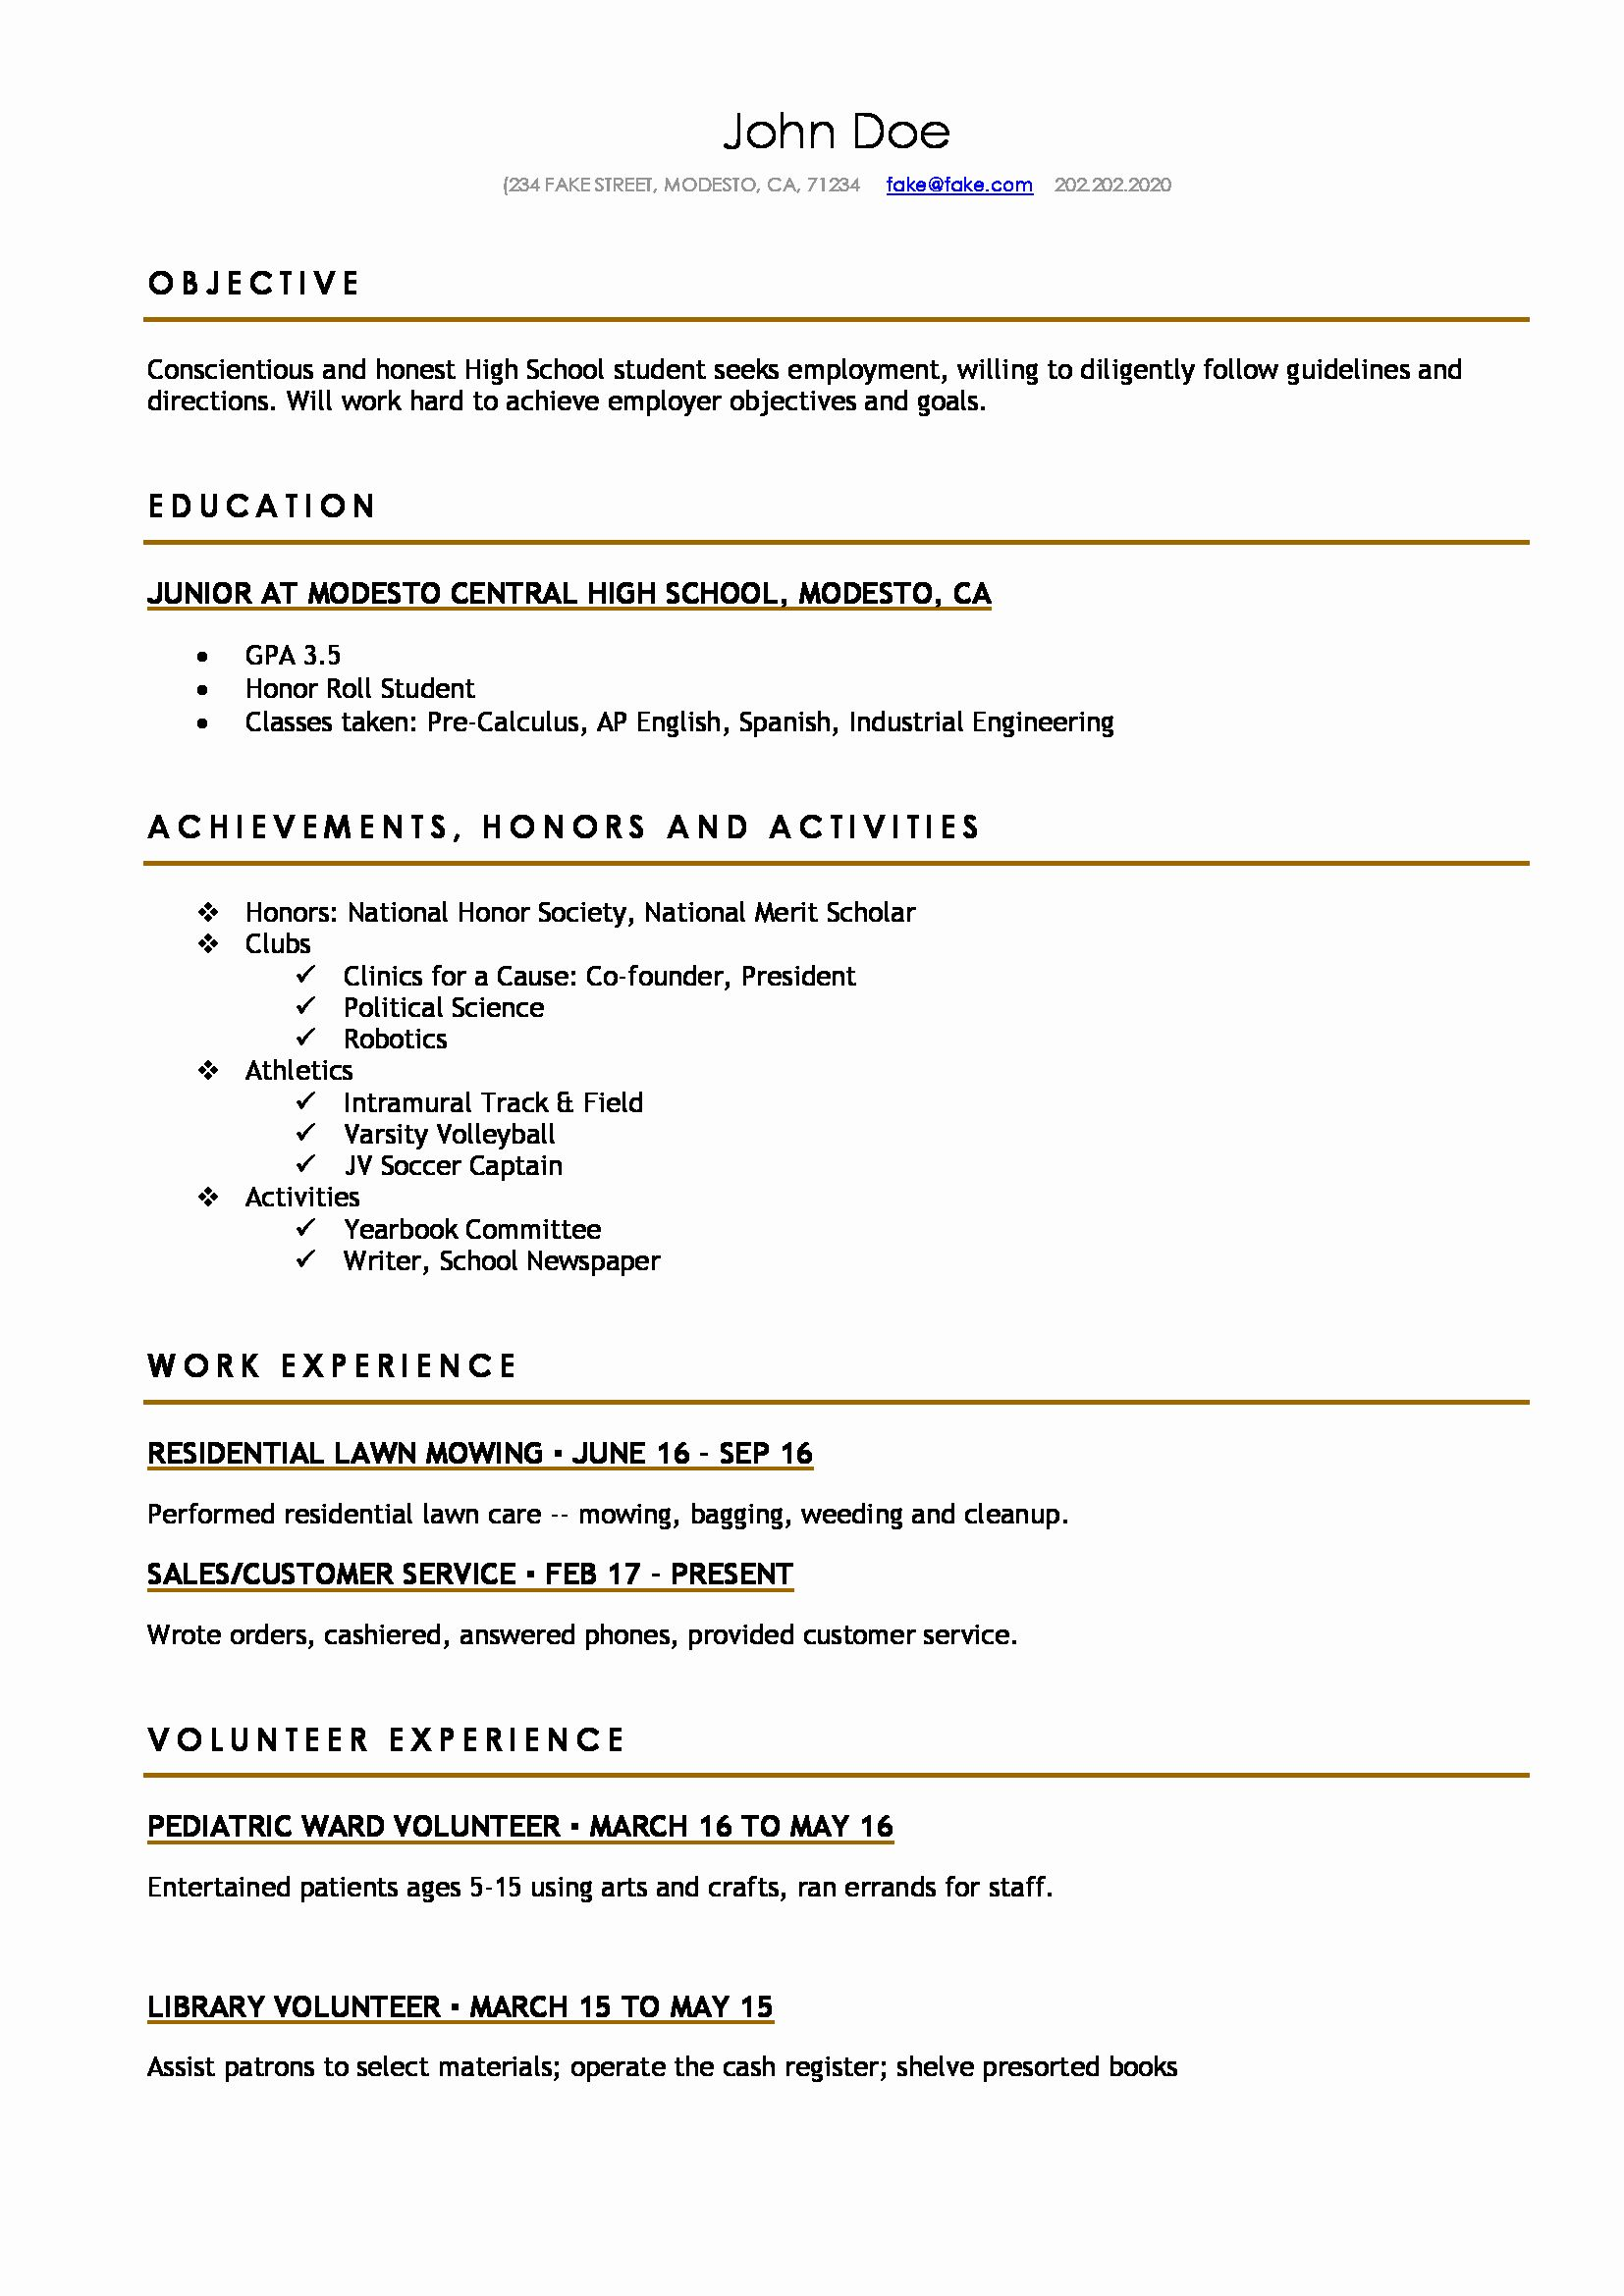 College Student Resume Template Fresh High School Resume